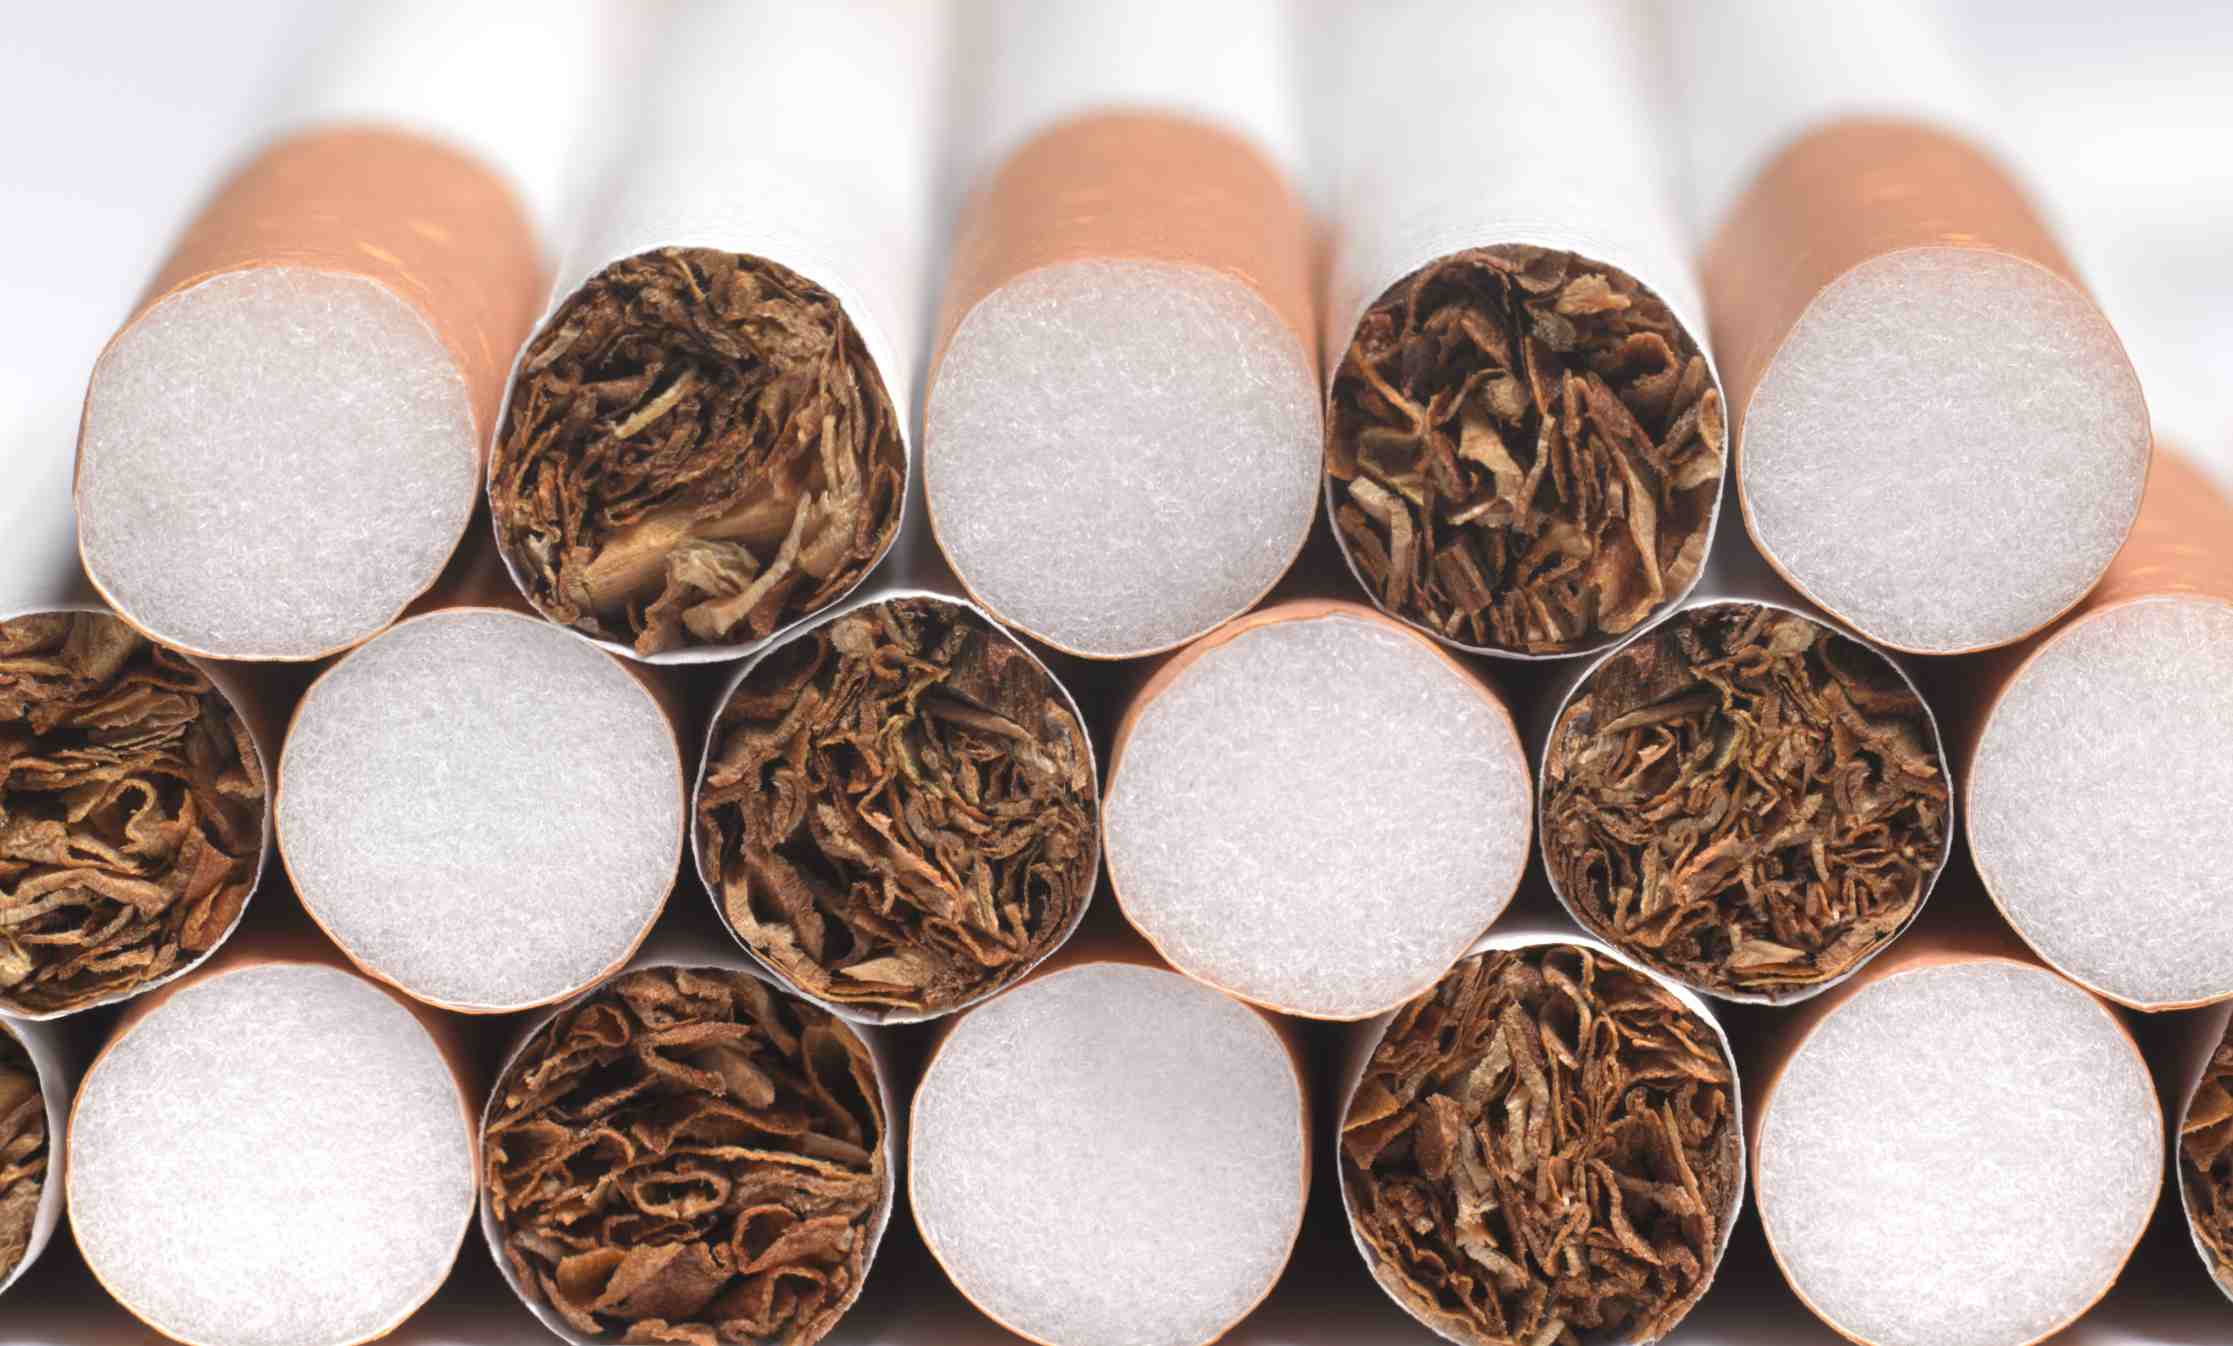 Reasons Quitting Smoking Won't Eliminate Lung Cancer Deaths